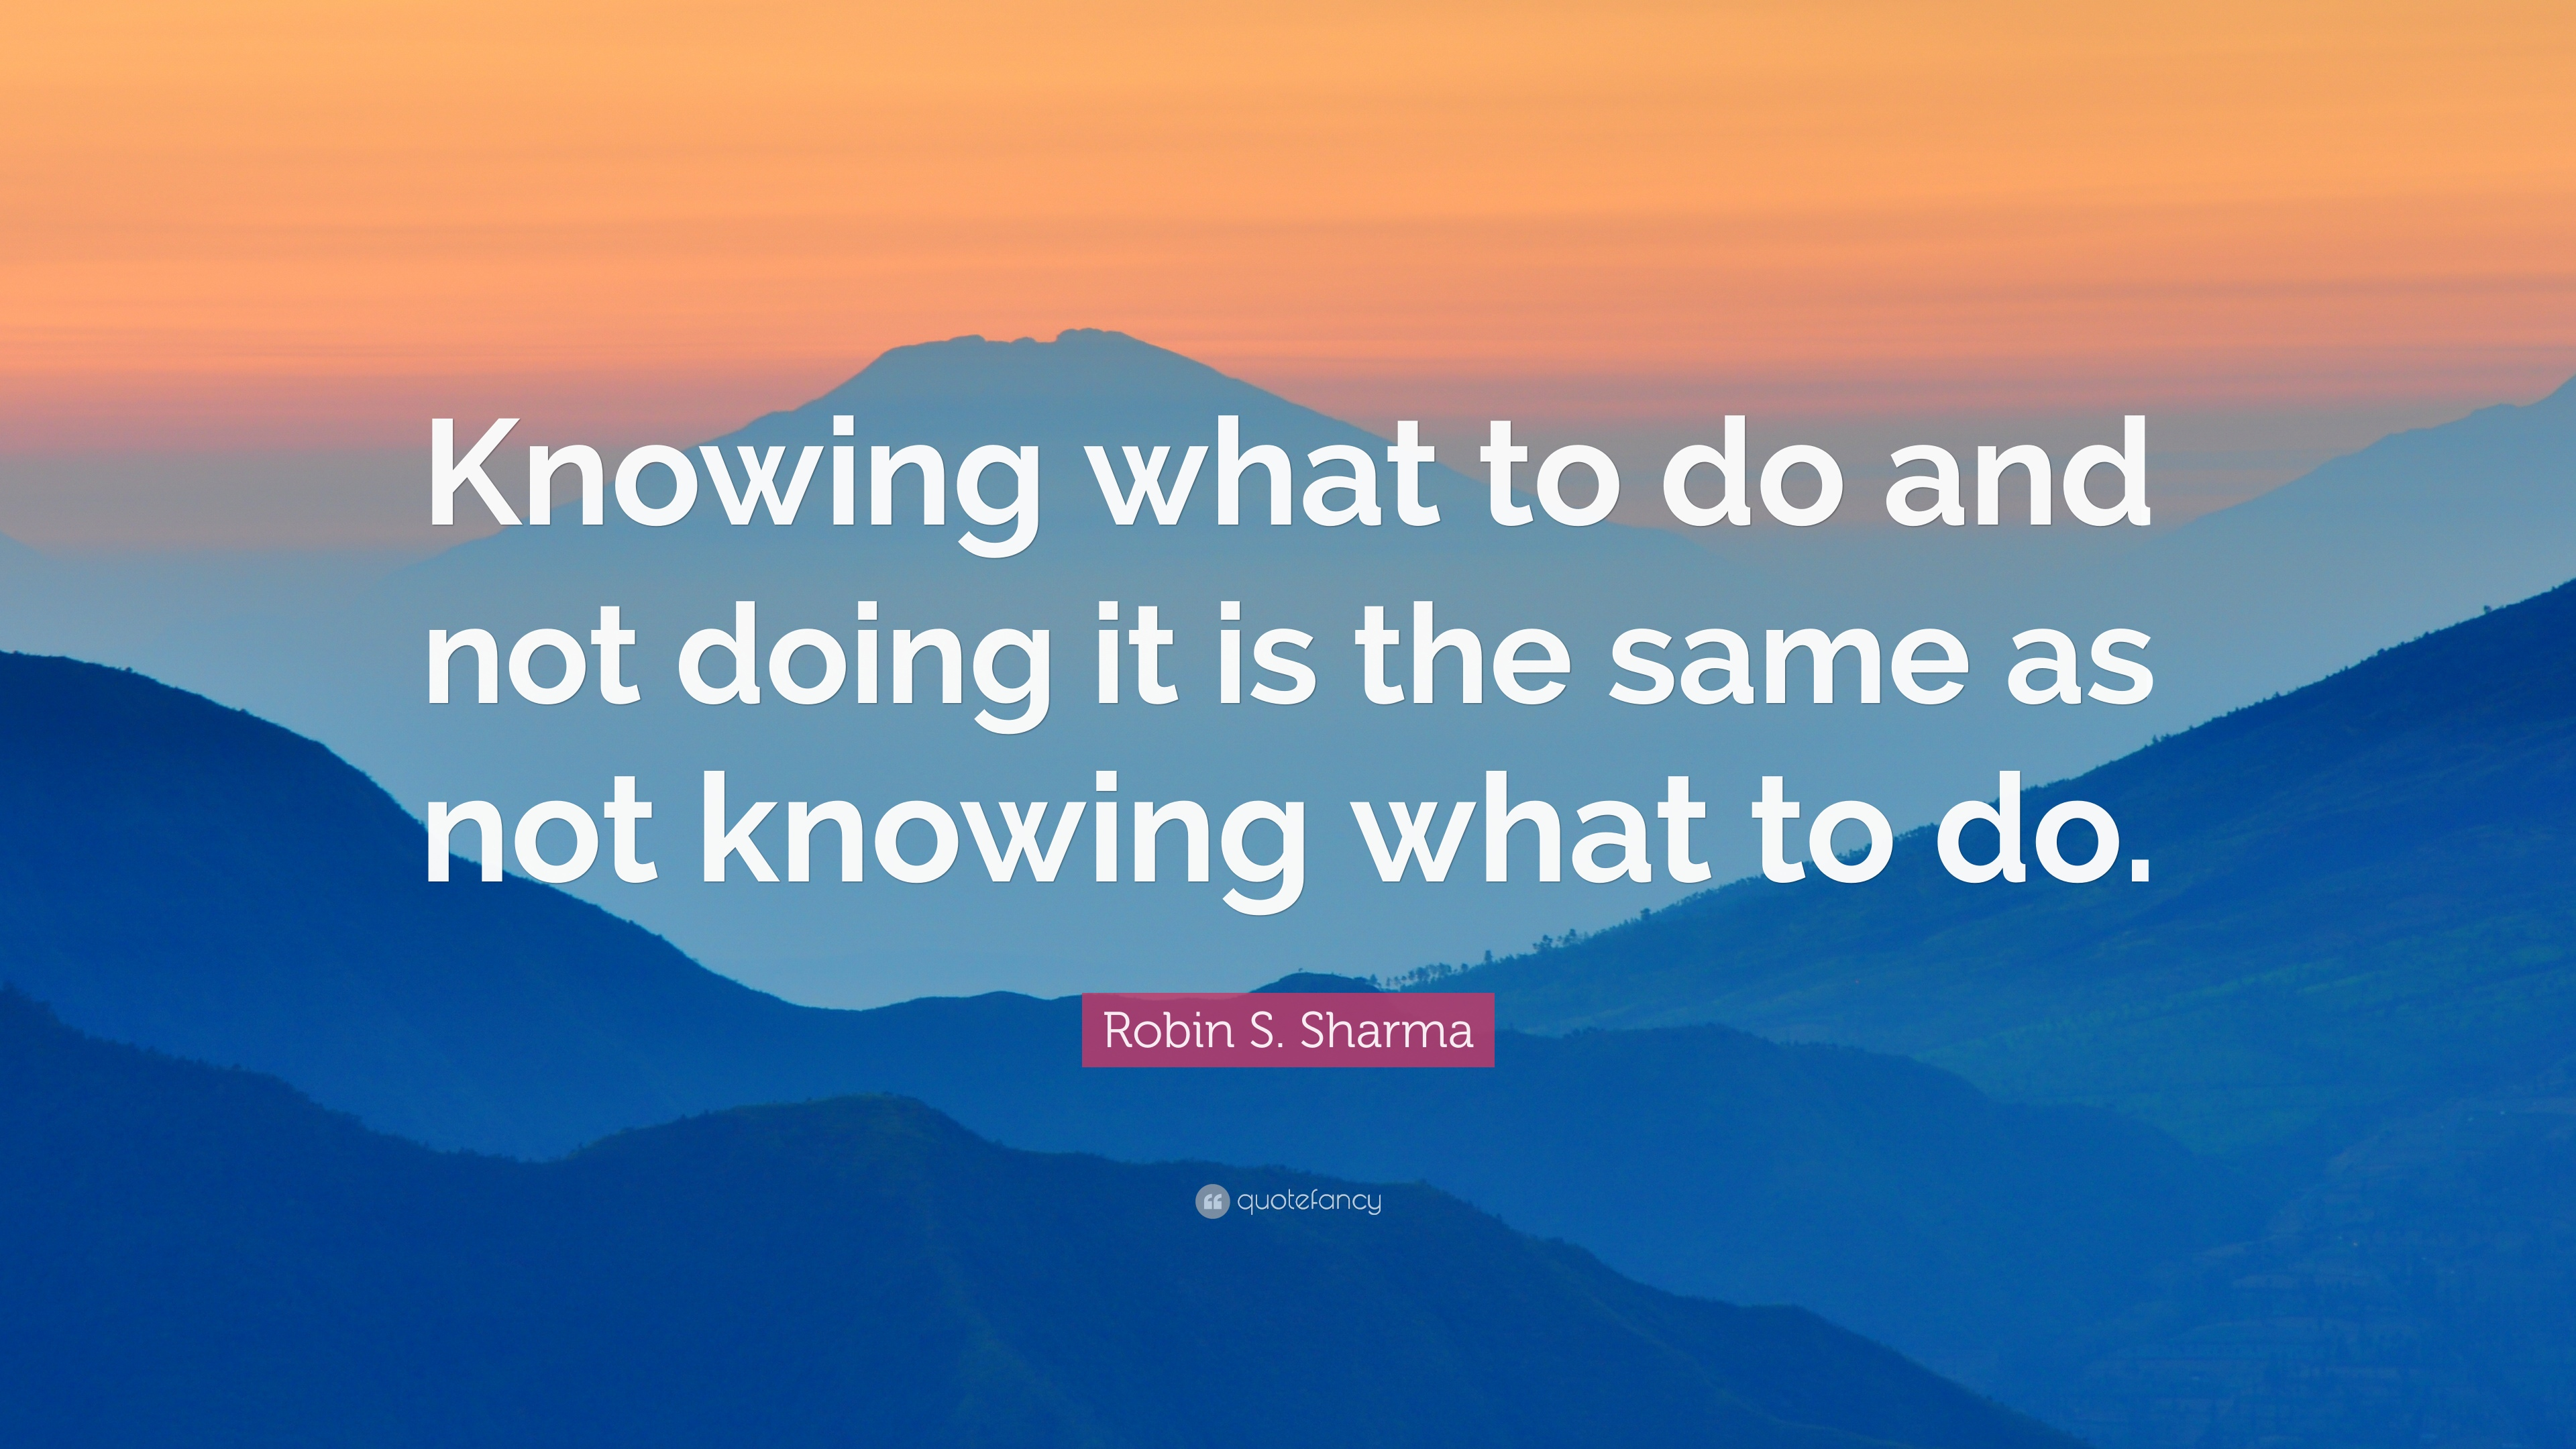 183717-Robin-S-Sharma-Quote-Knowing-what-to-do-and-not-doing-it-is-the